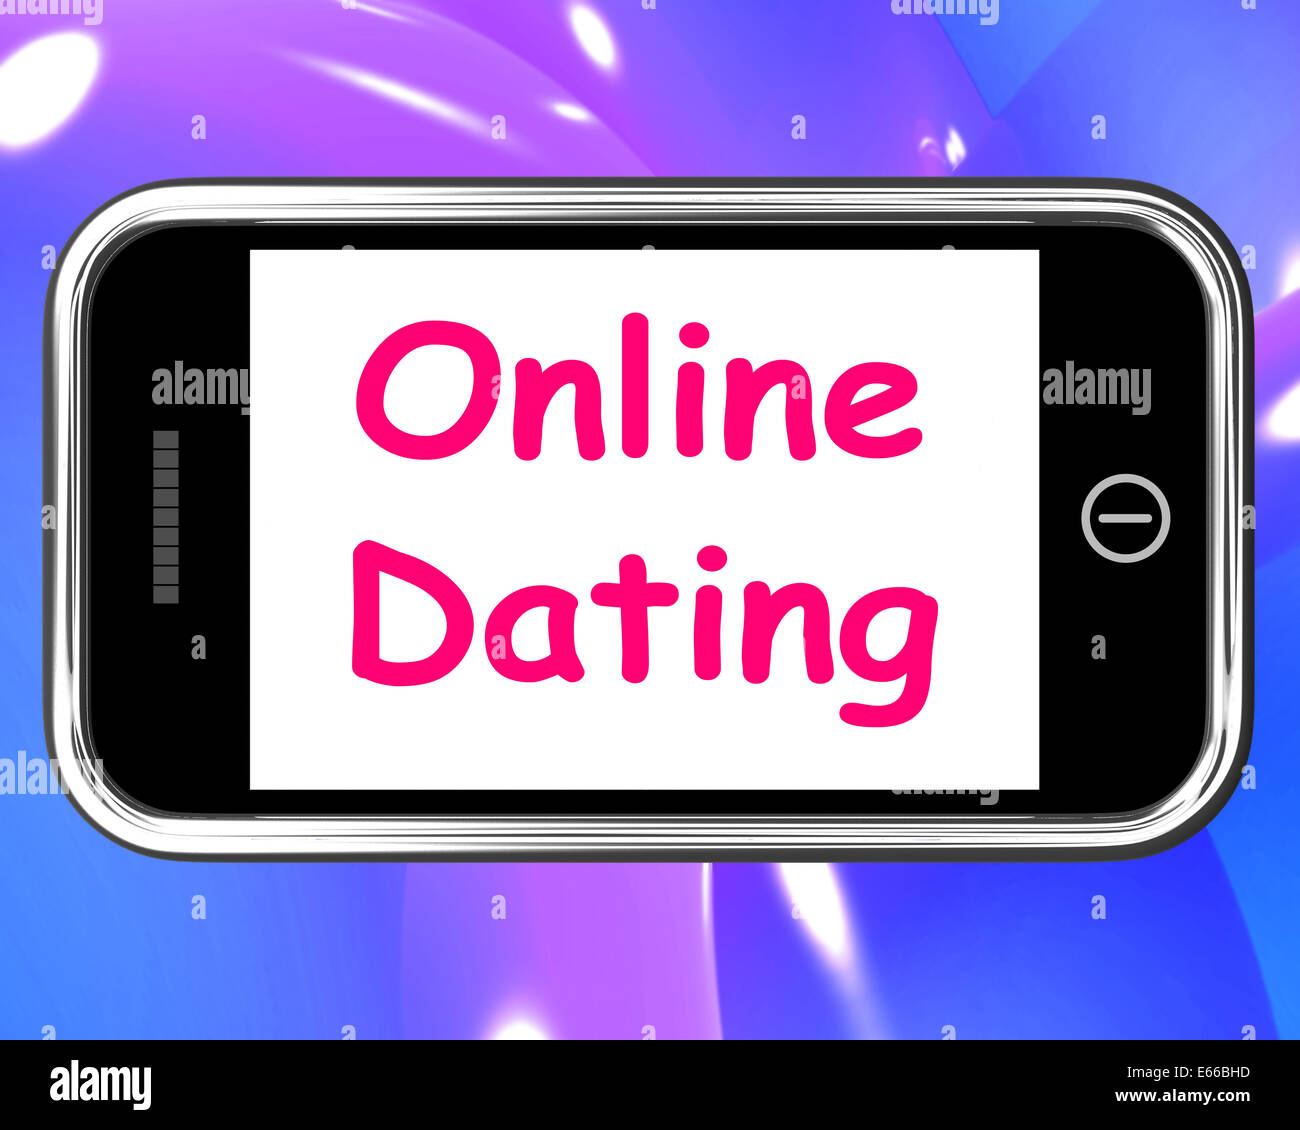 online dating speaking on the phone